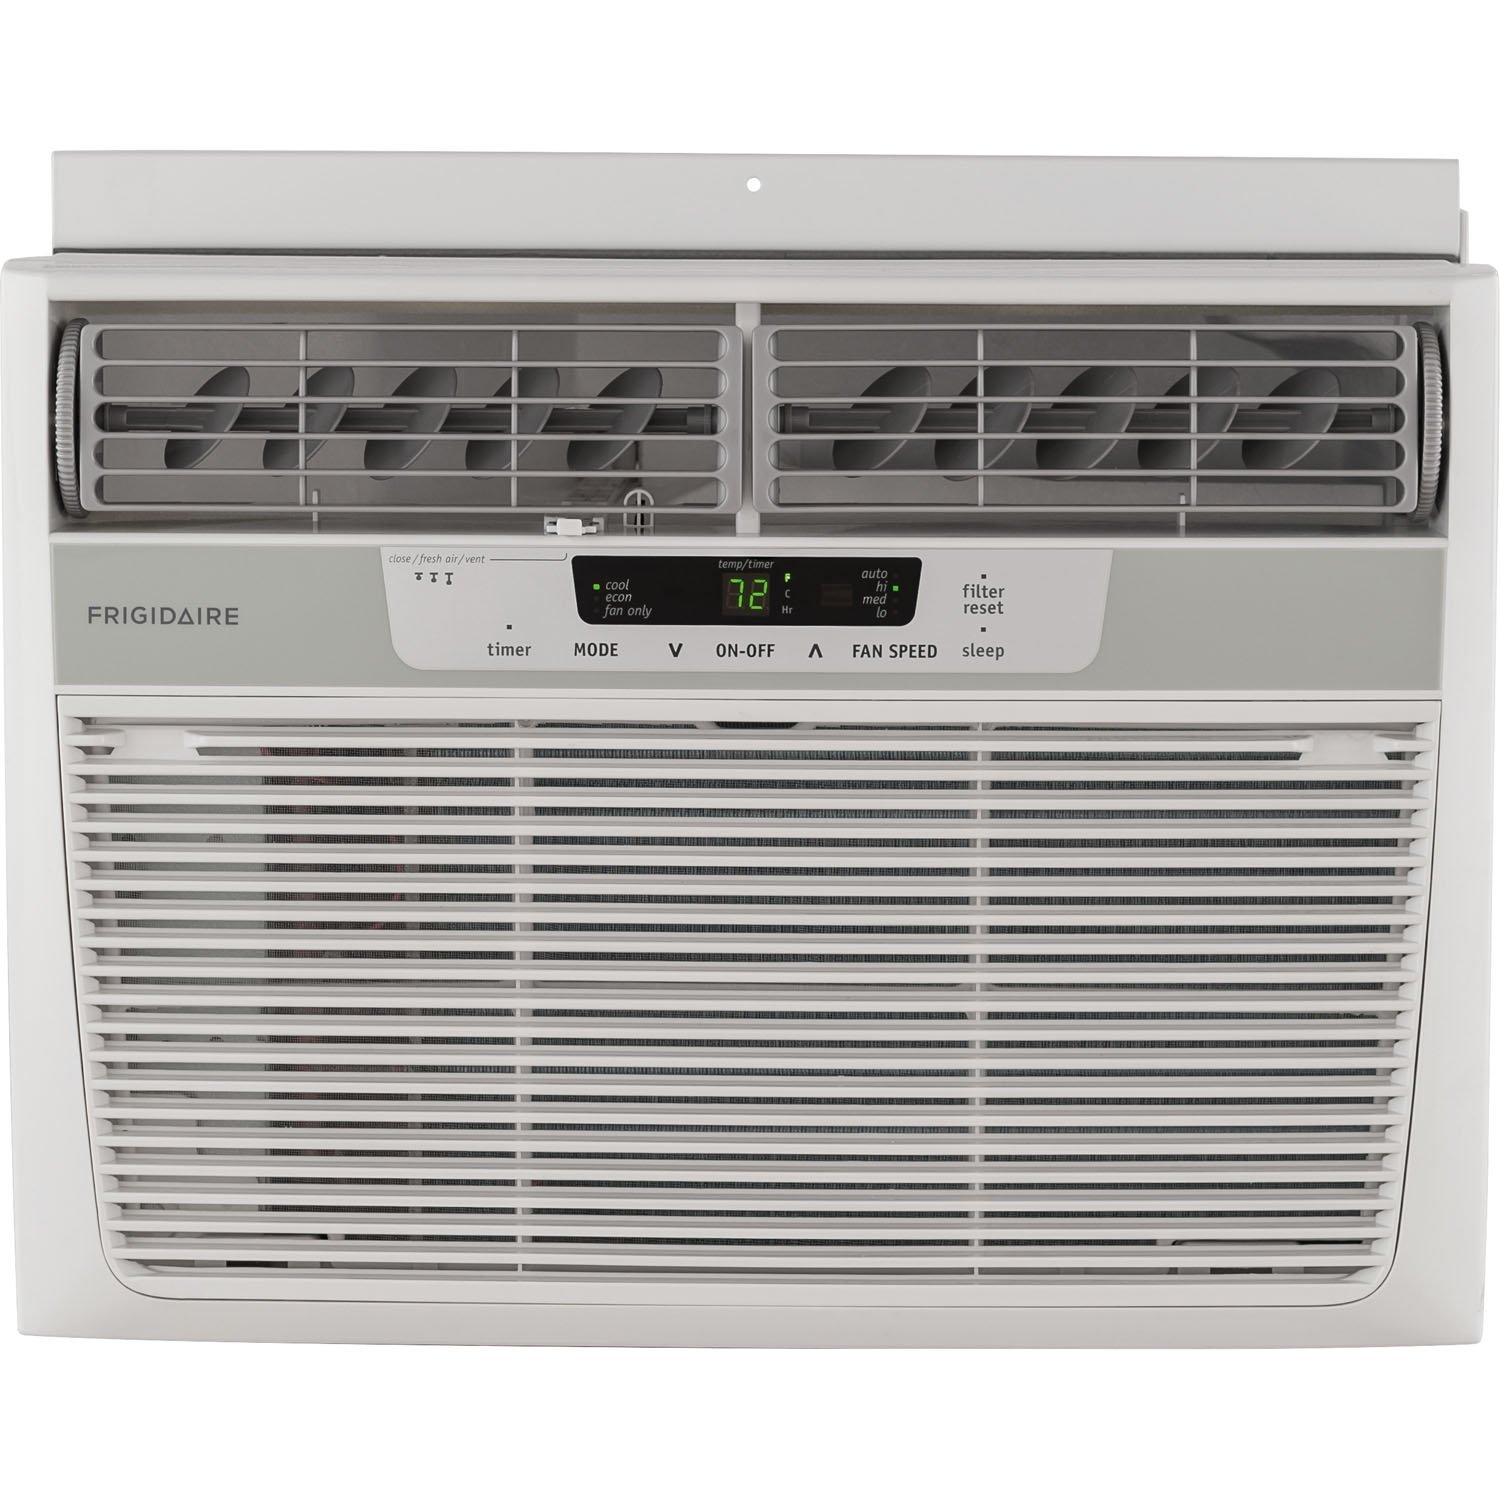 Review of Frigidaire FFRA1022R1 10000 BTU 115-volt Window-Mounted Compact Air Conditioner with Remote Control